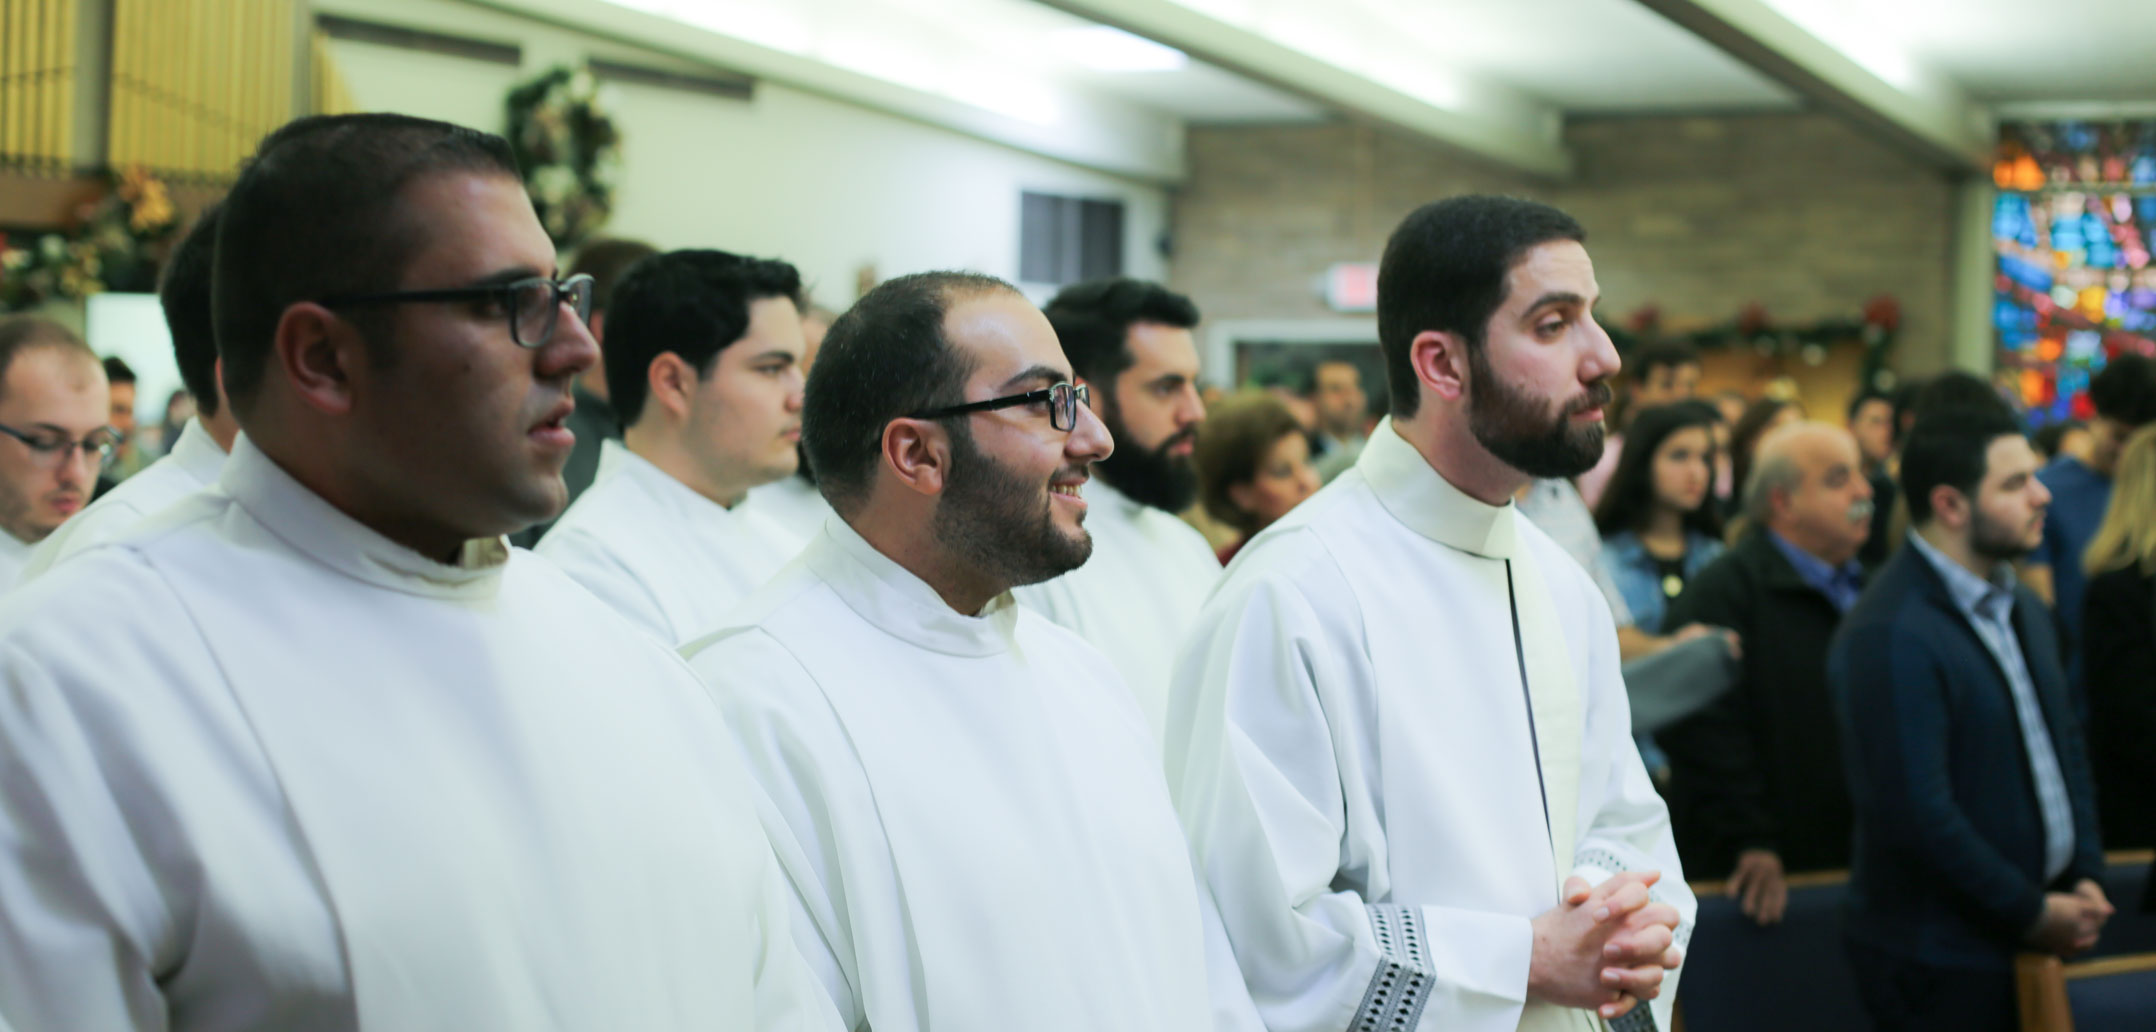 2016/12/Chaldean_Ordinations_December_2016-6.jpg